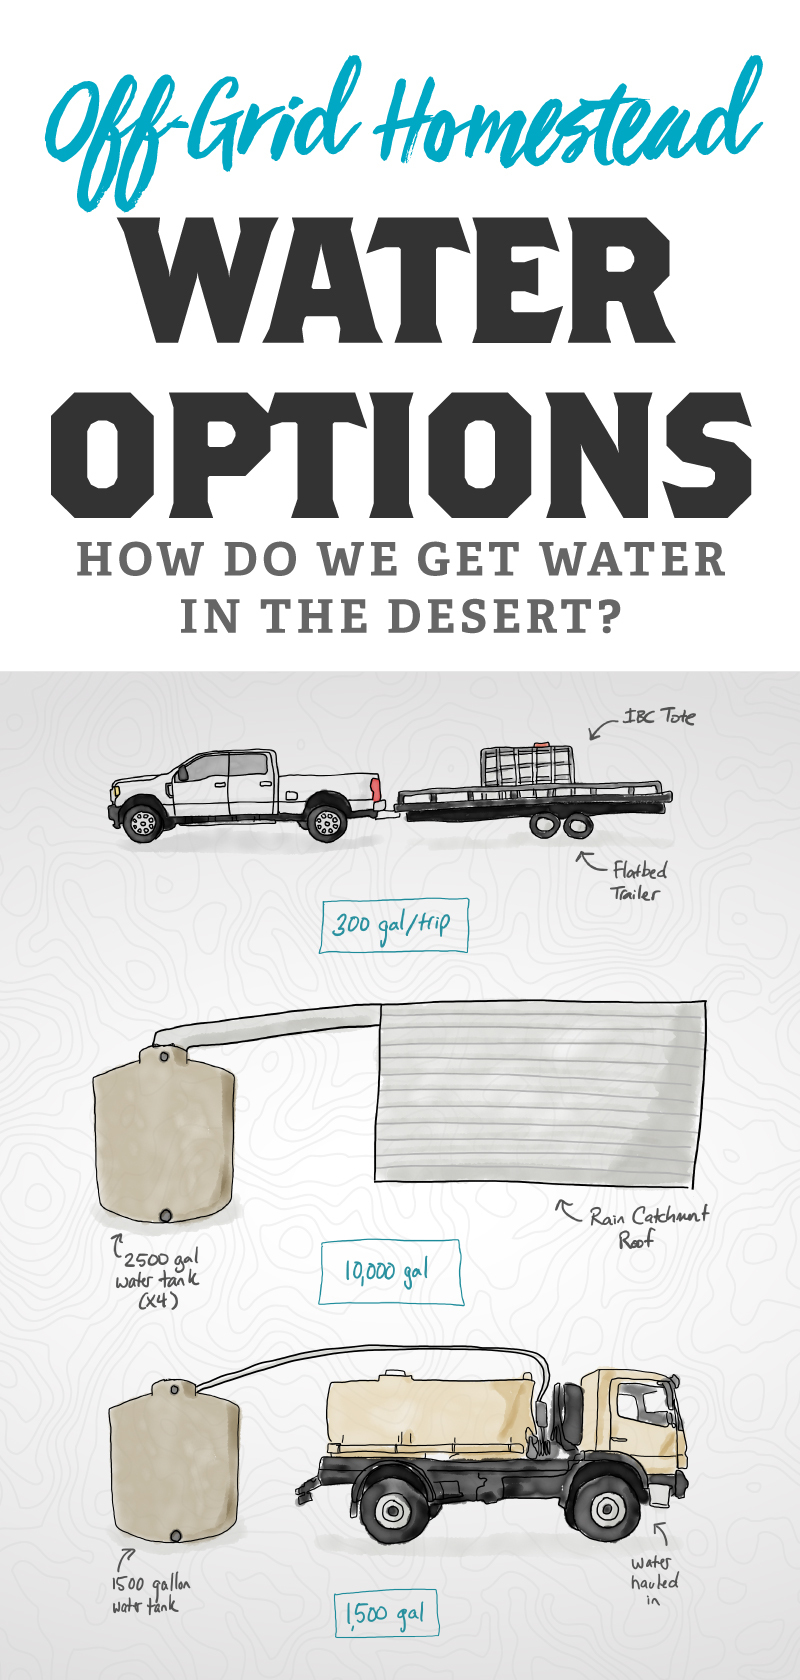 Building an Off-Grid Homestead - Water Options